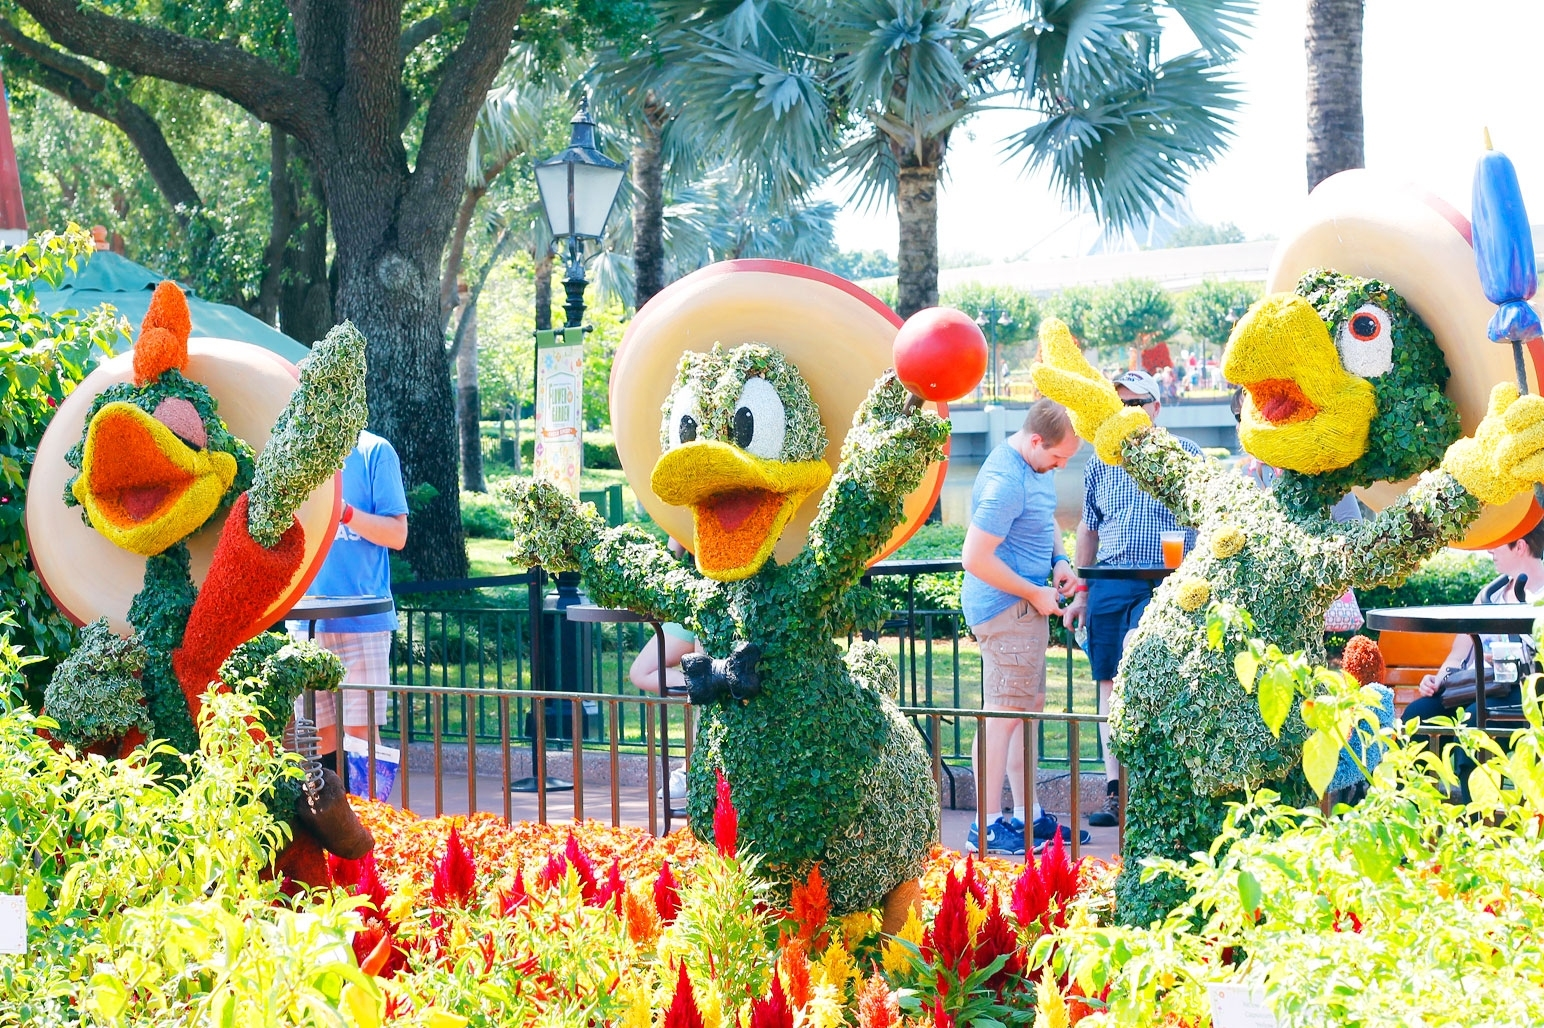 Ultimate Guide To Epcot Flower And Garden Festival   Sarah In The within 2019 Epcot Flower And Garden Festival Guide